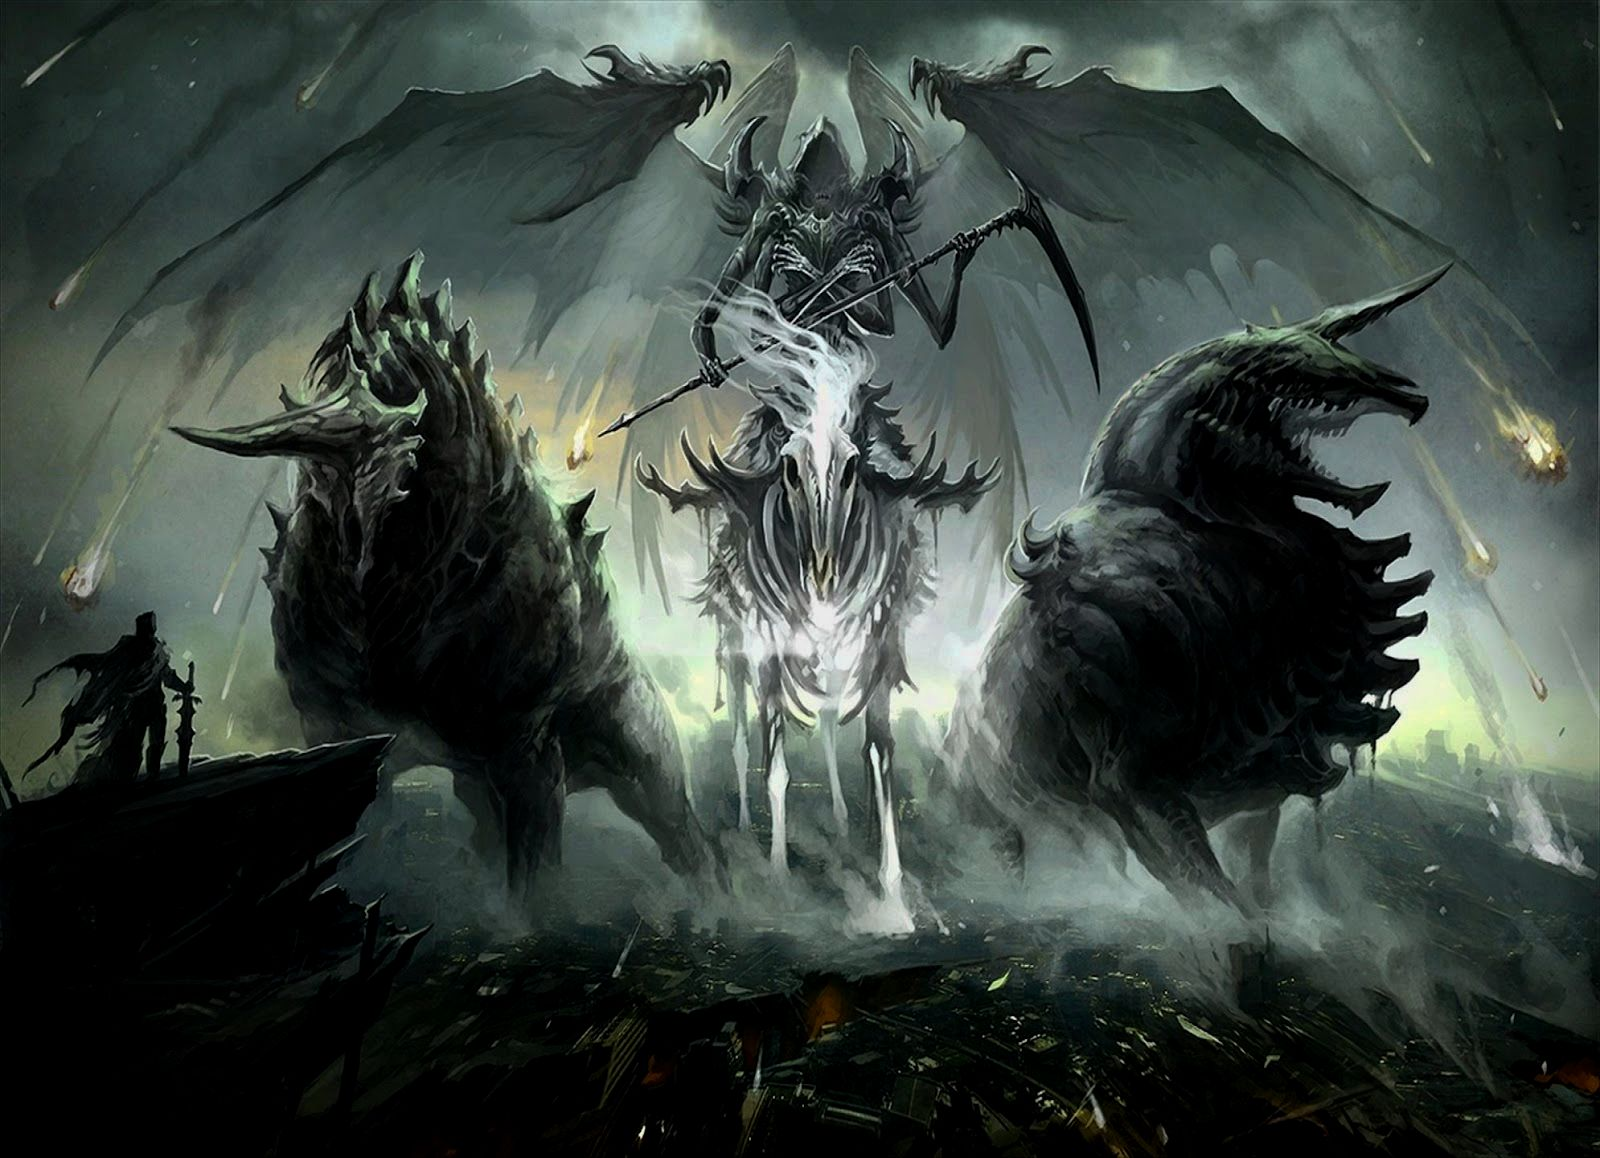 A Collection Of Dark Mysterious Hd Fantasy Wallpapers: Dark Fantasy Wallpapers